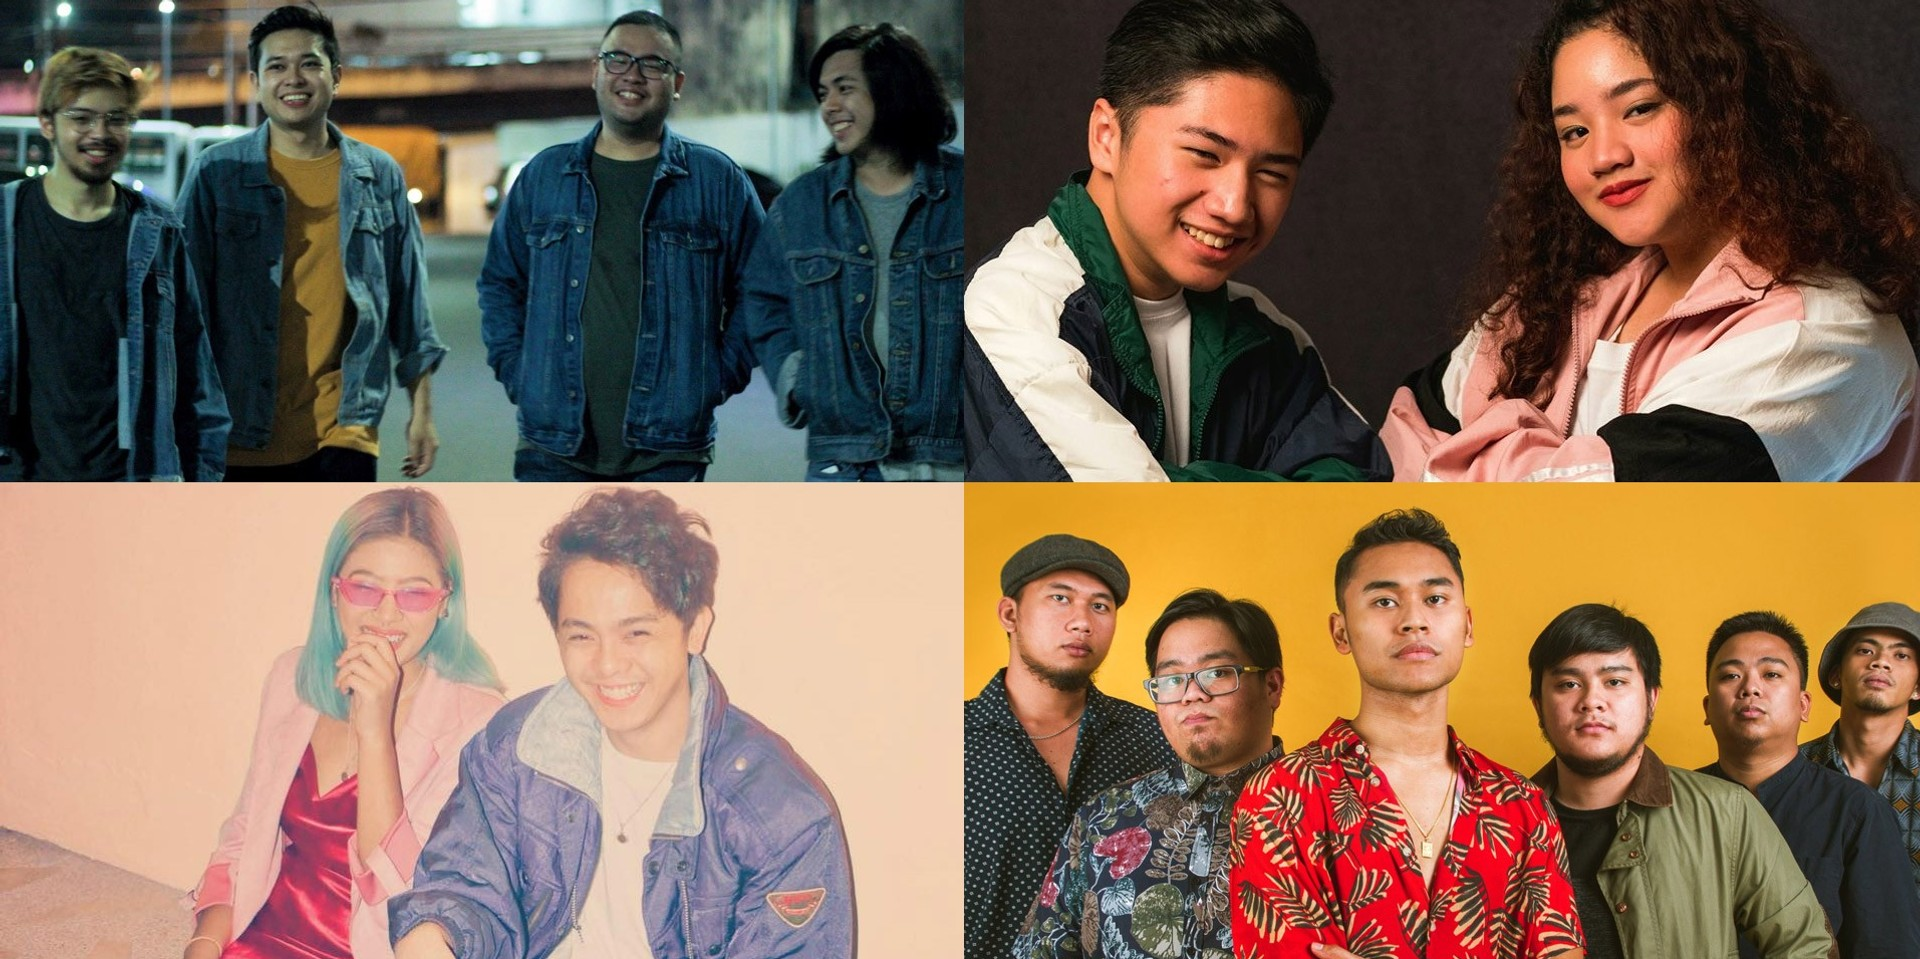 Here are the Wanderbattle 2019 quarter finalists